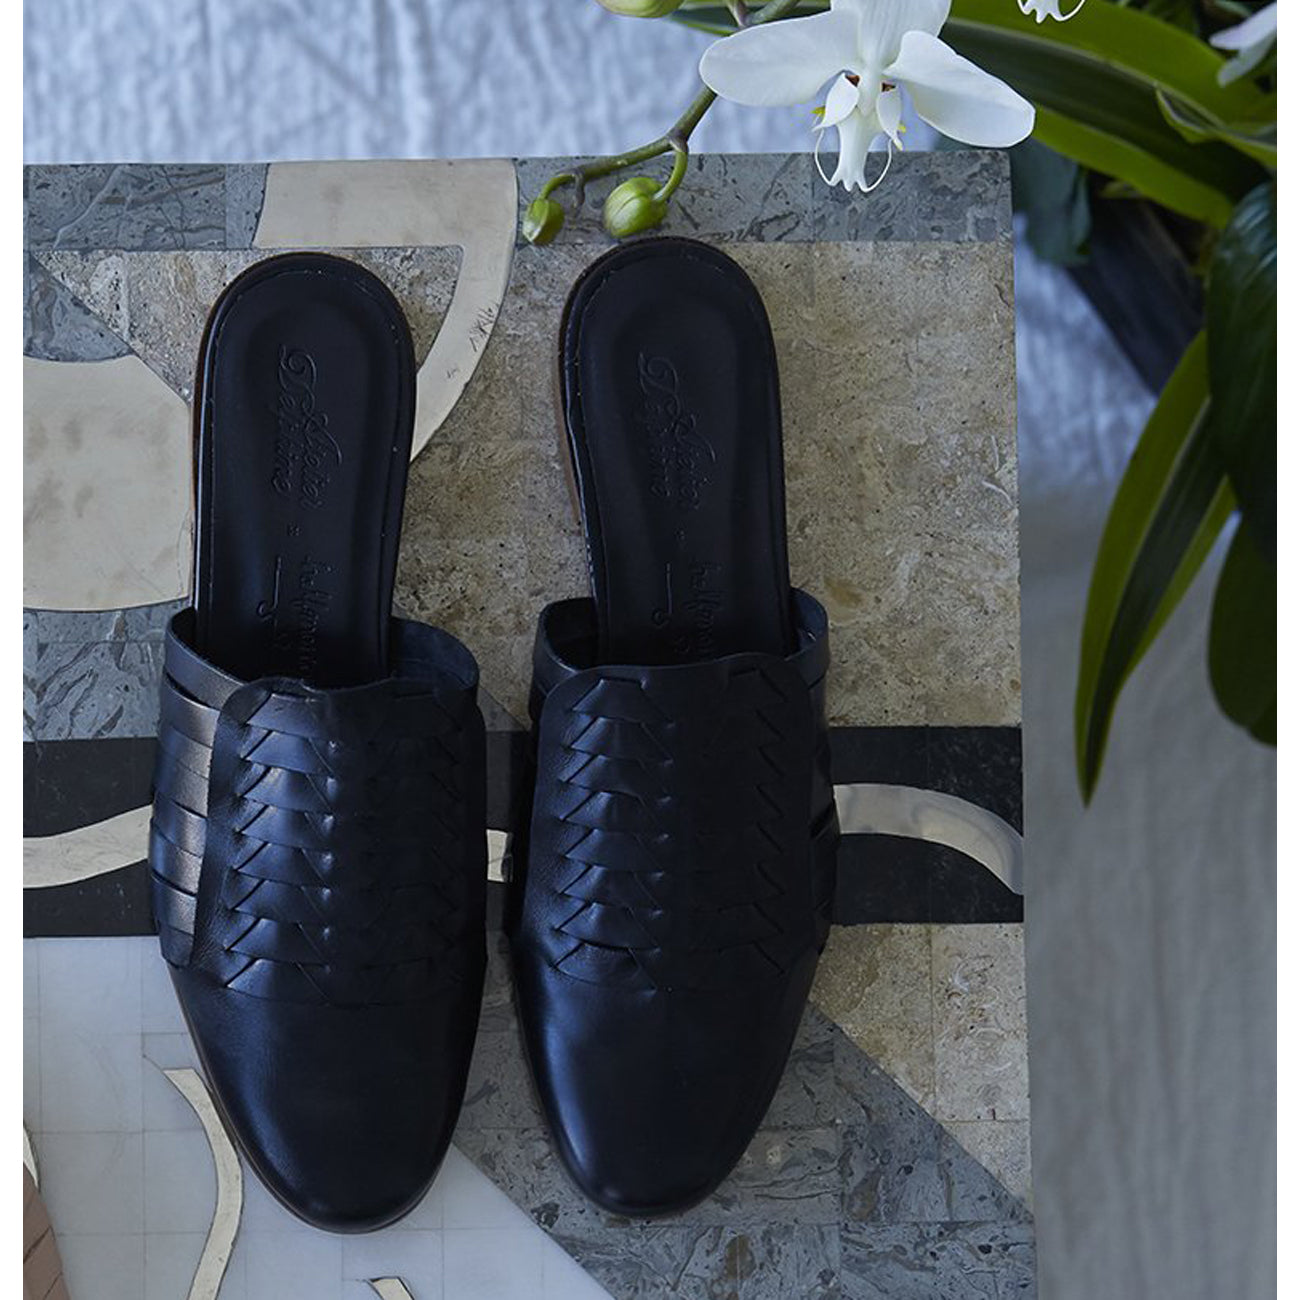 Atelier Delphine Minimalist Shoes in Black